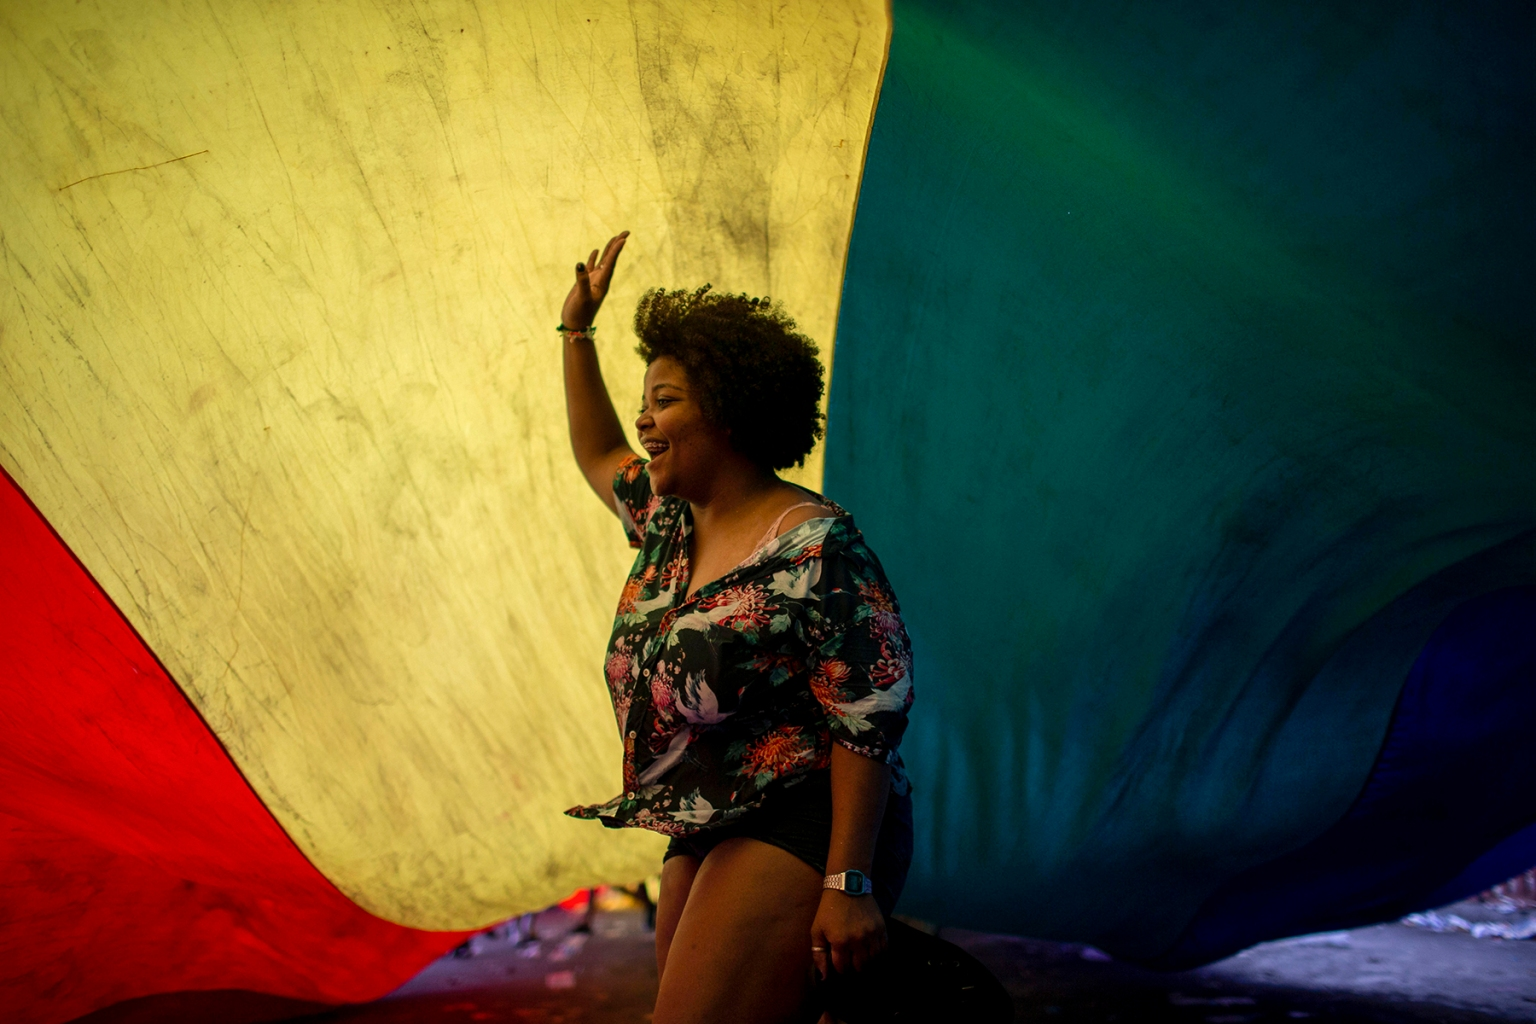 A reveler is pictured during the Gay Pride parade at Copacabana beach in Rio de Janeiro, Brazil, on Sept. 30. (Mauro Pimentel/AFP/Getty Images)